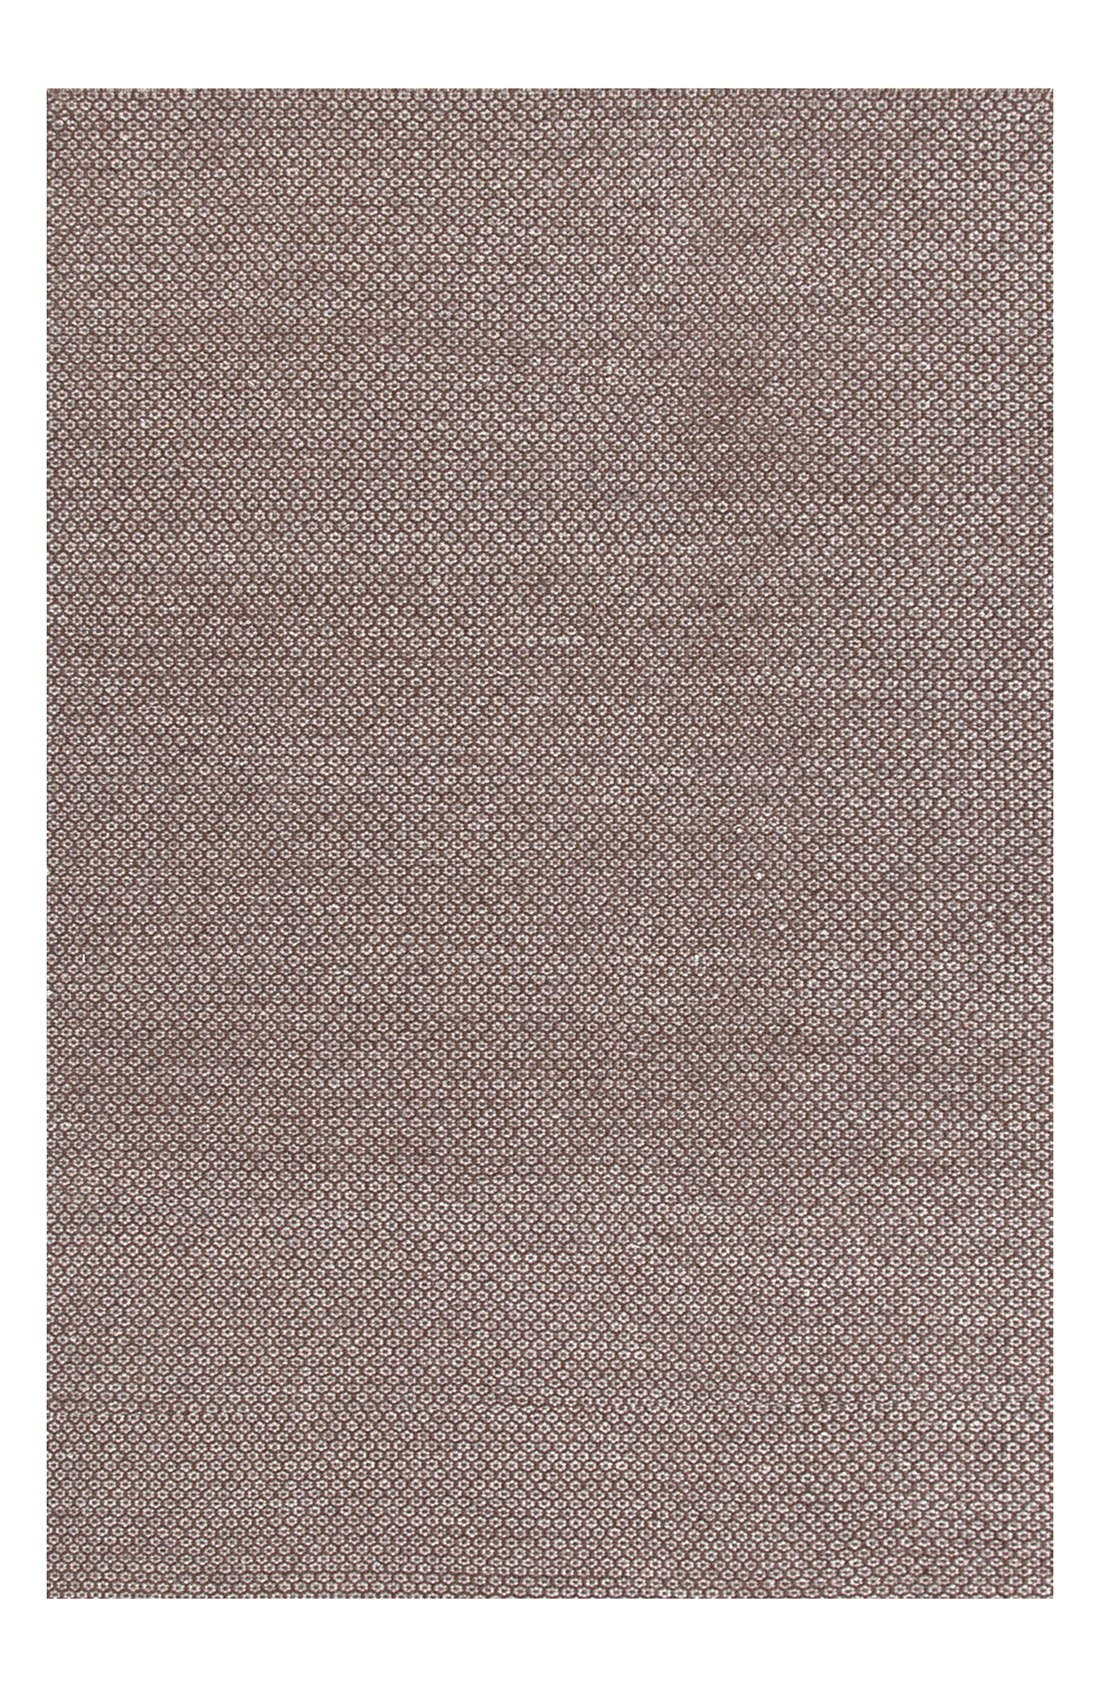 Alternate Image 1 Selected - Dash & Albert 'Honeycomb' Wool Rug